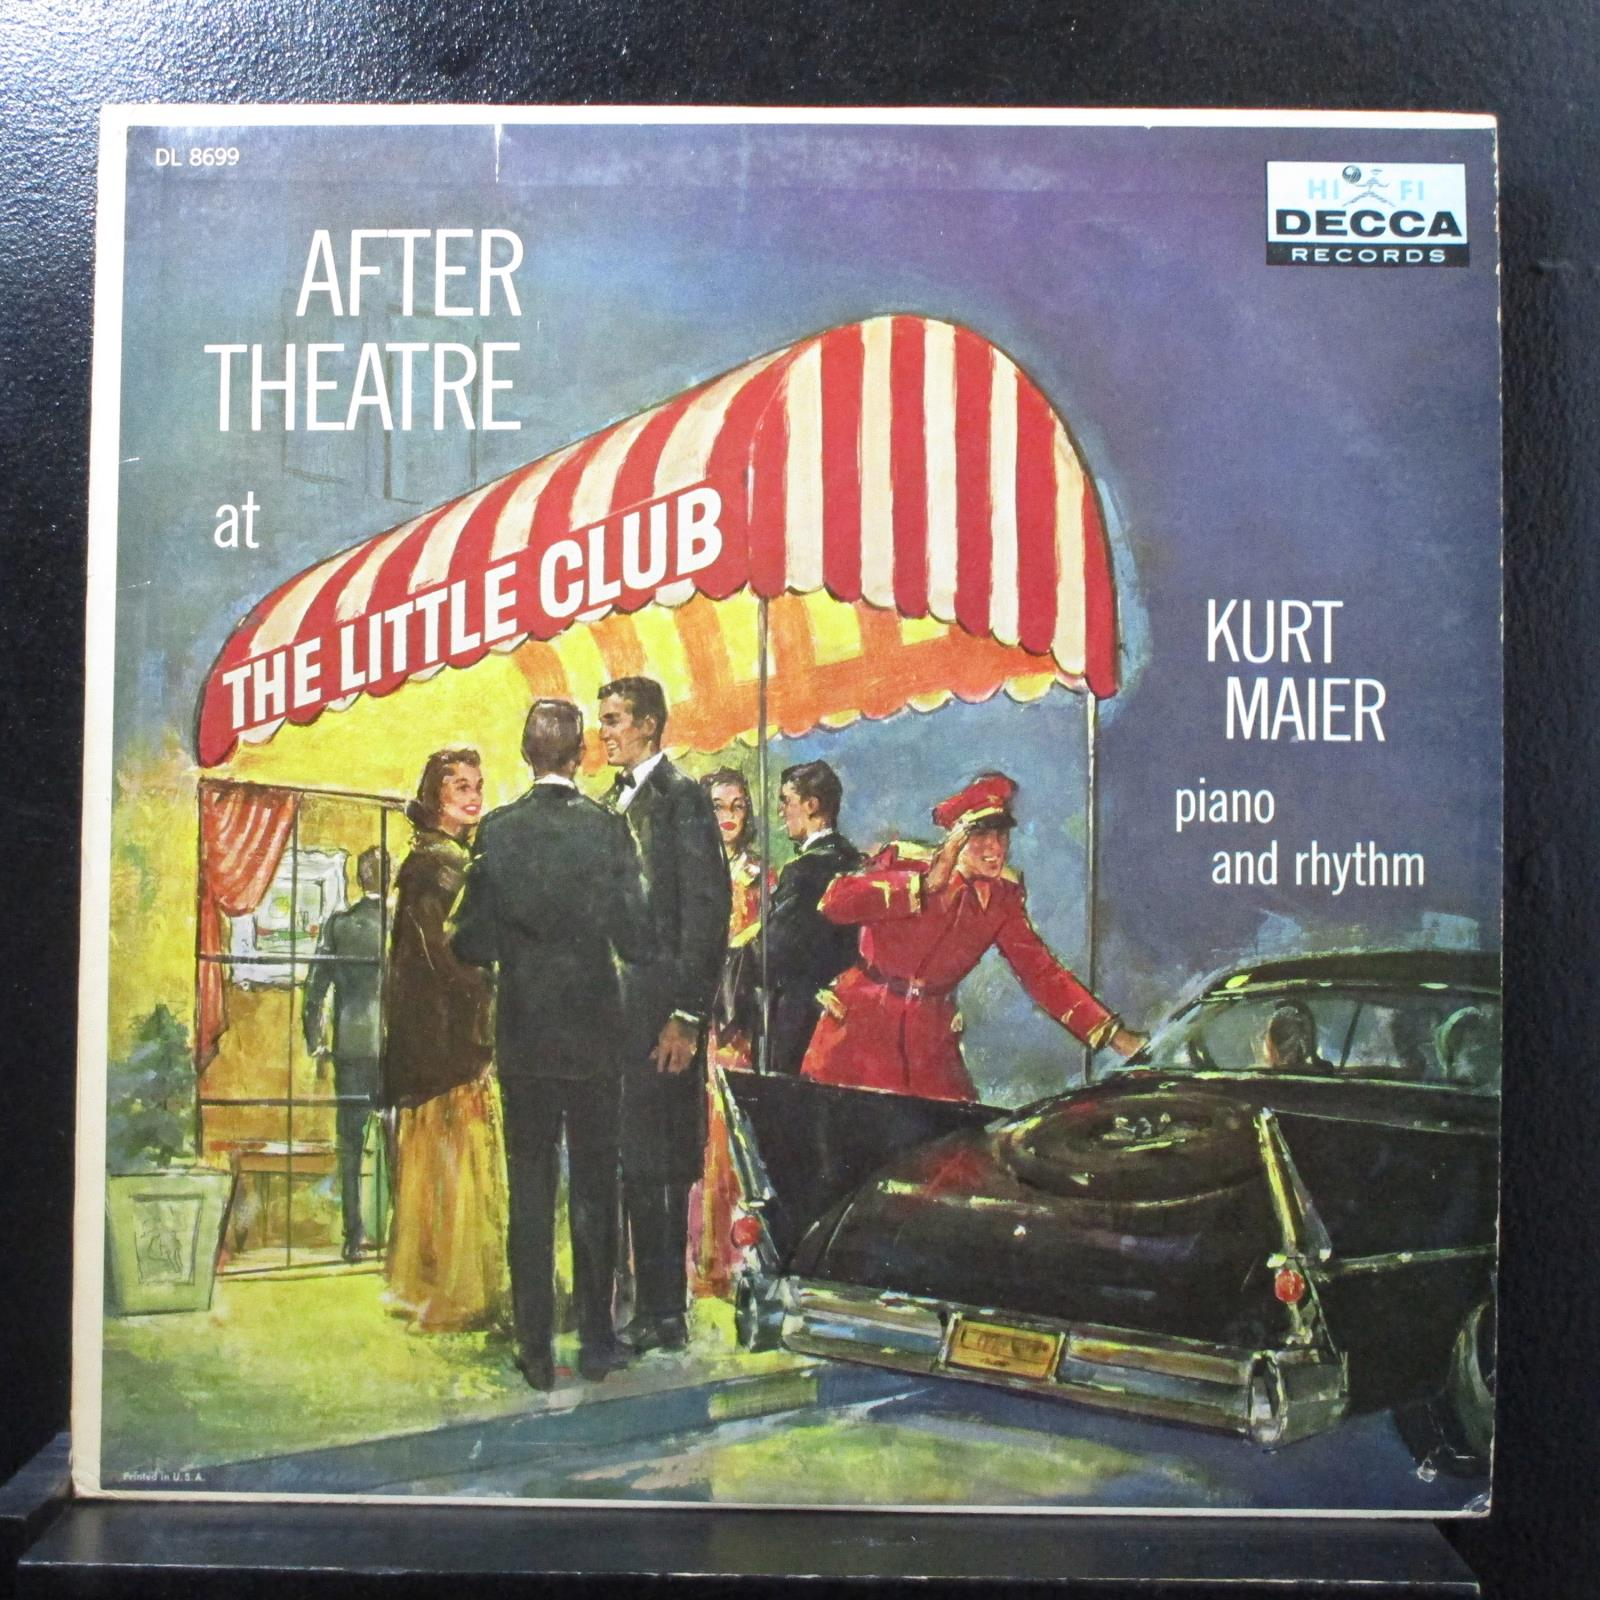 Kurt Maier - After Theatre At The Little Club LP VG+ DL 8699 Mono Vinyl Record